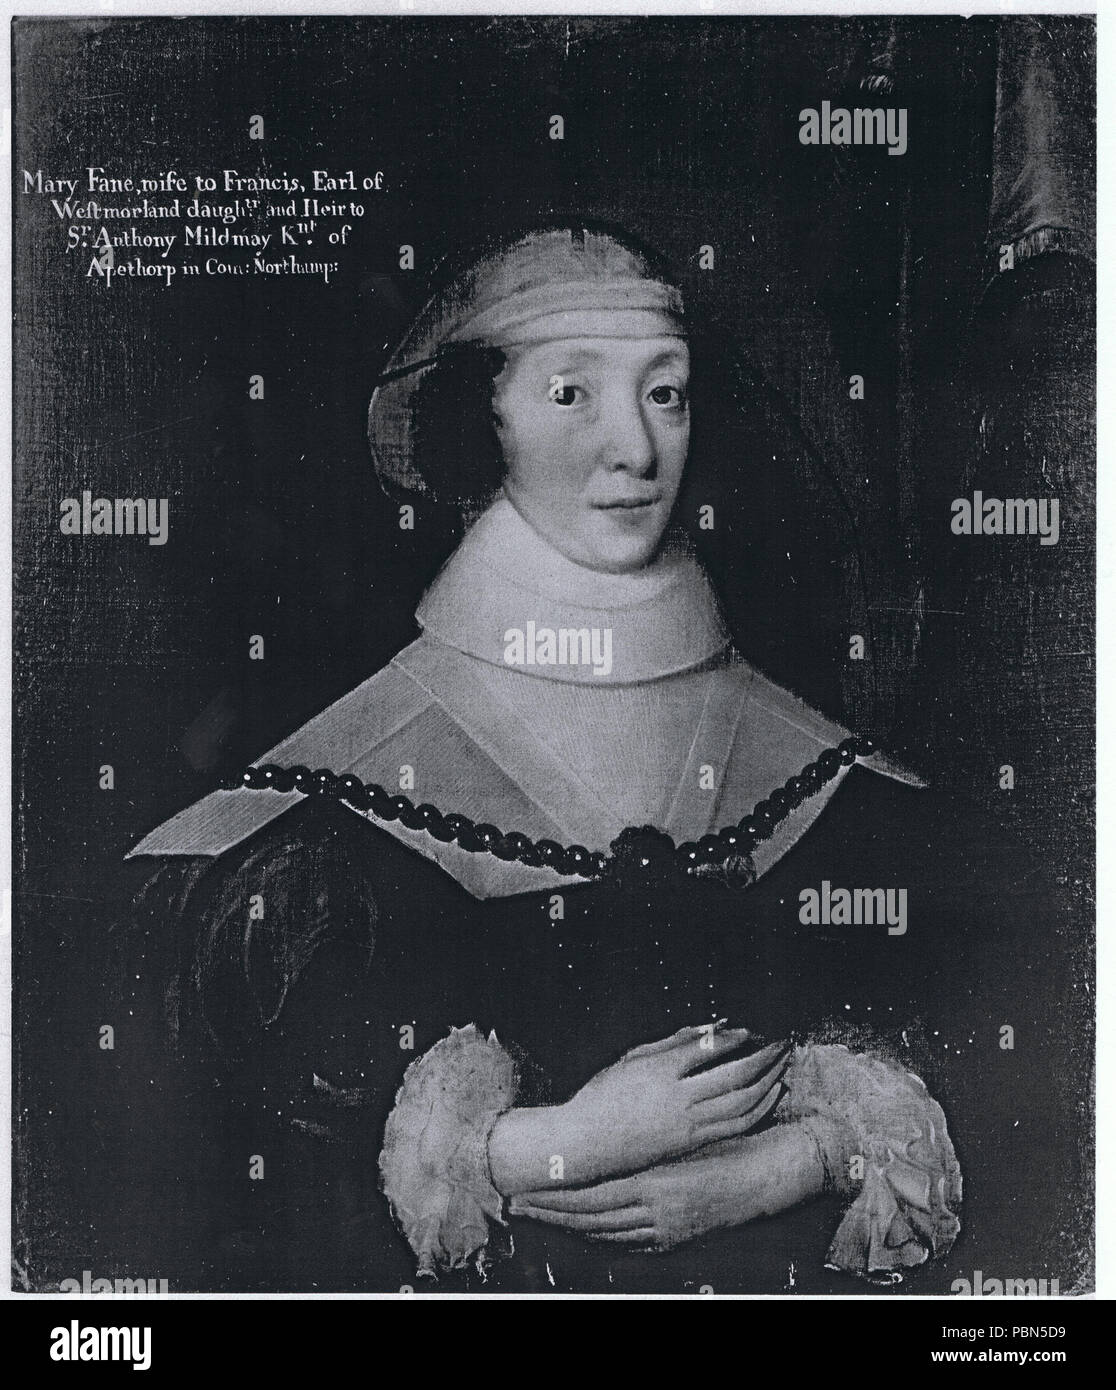 . English: Black & white reproduction of a 28 x 25 inch oil portrait of Mary Fane, wife to Francis, Earl of Westmorland, daughter and Heir to Sir Anthony Mildmay, Kt of Apethorp in County Northampton. circa 1625/26? 1002 Mary Fane, wife to Francis, Earl of Westmorland, daughter and Heir to Sir Anthony Mildmay, Kt of Apethorp in County Northampton Stock Photo